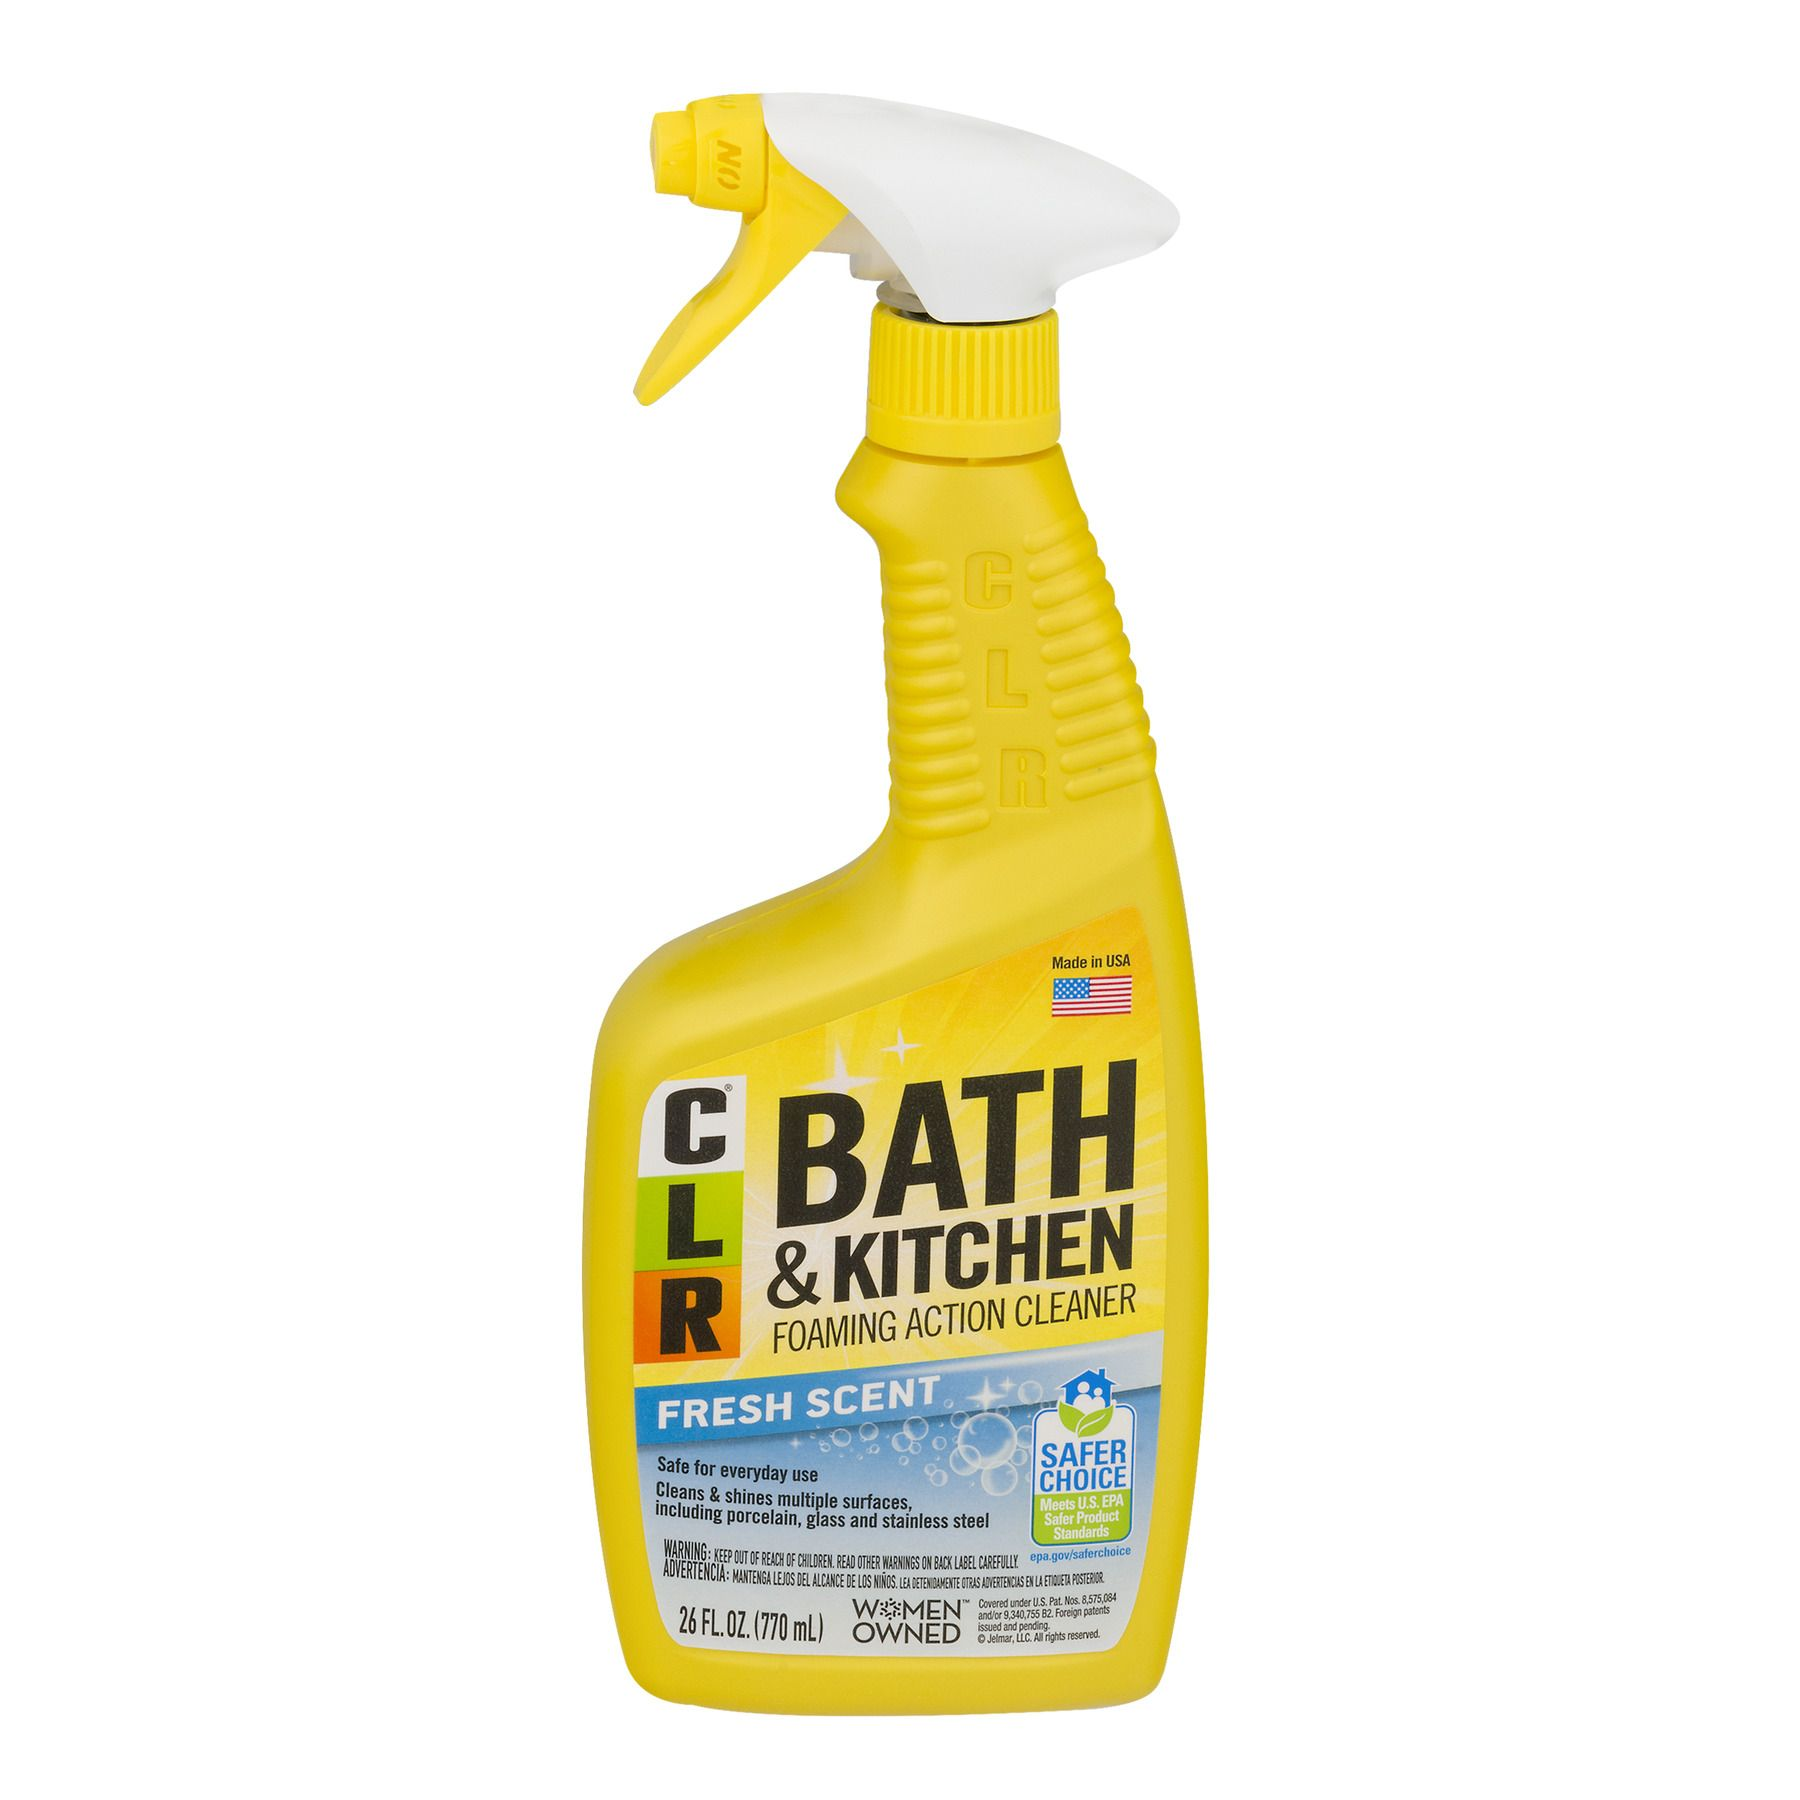 7 Best Tile Grout Cleaners 2020, Best Bathroom Tile Grout Cleaner Uk